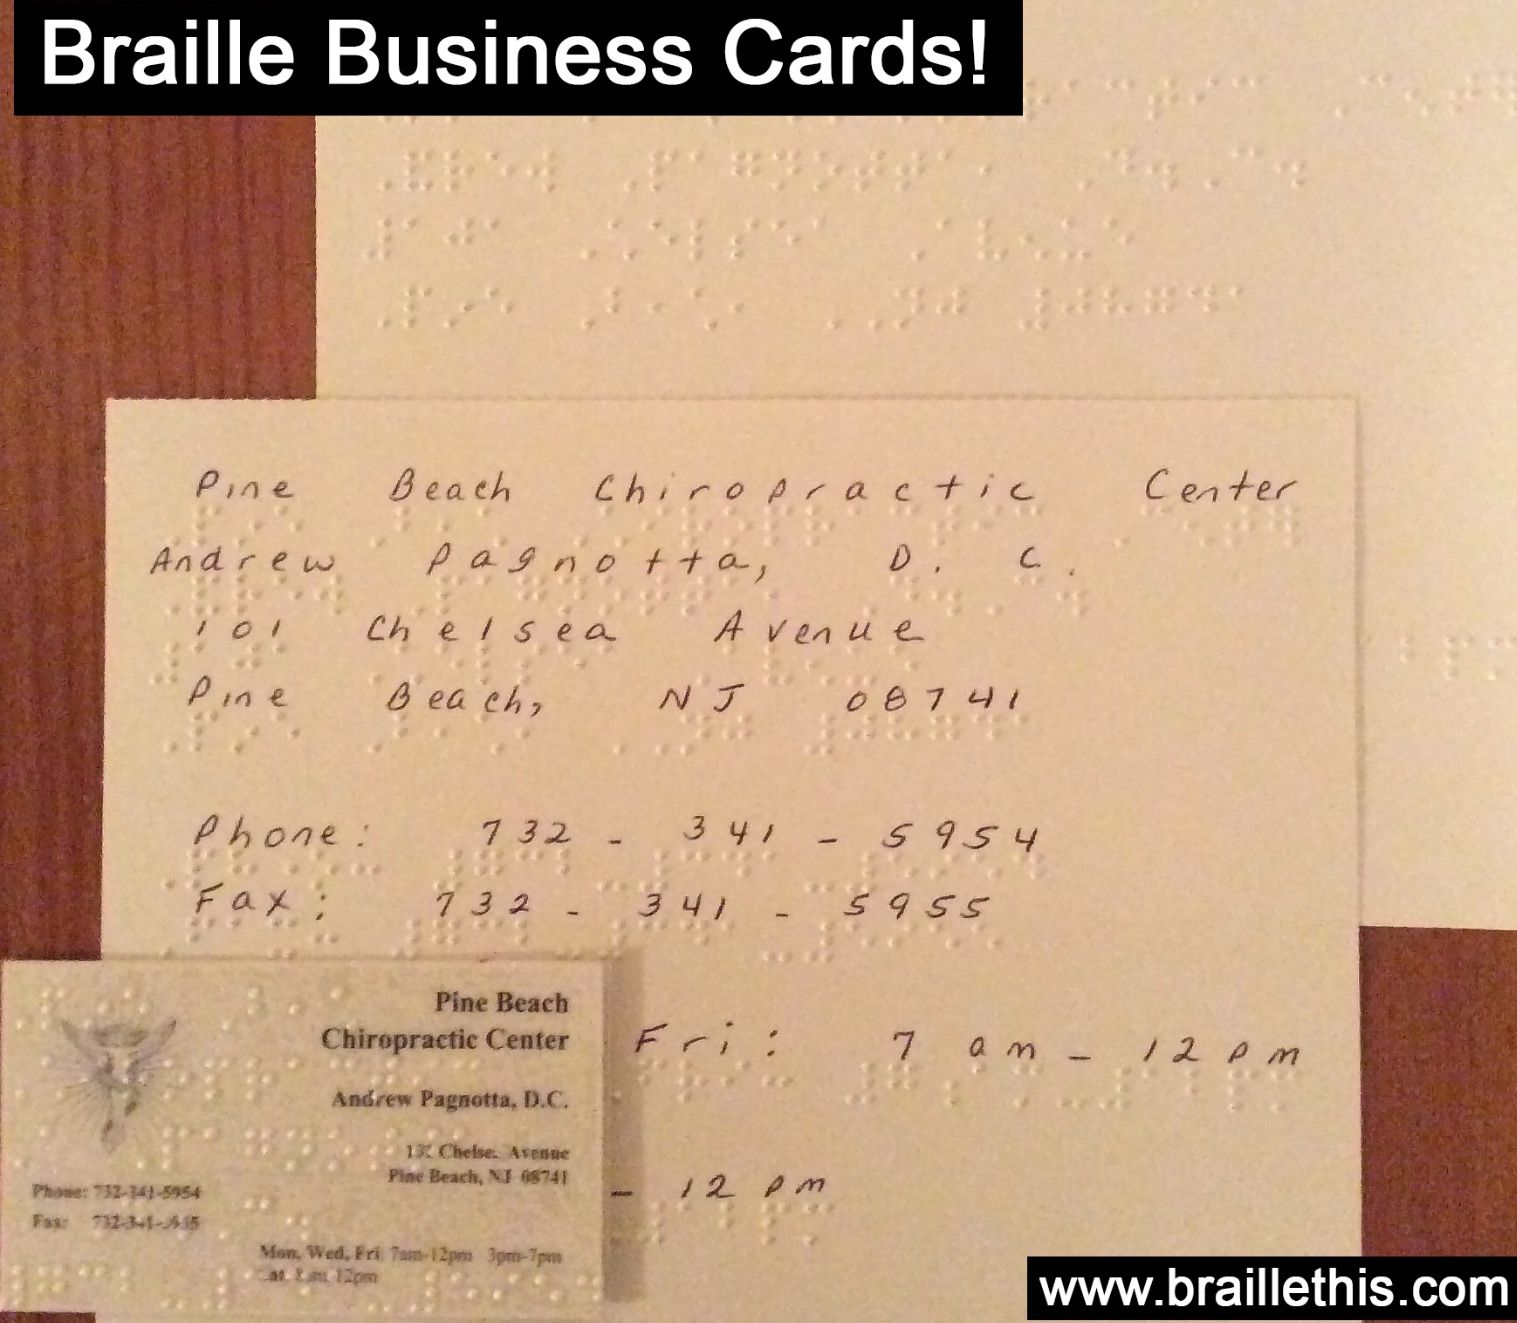 Braille Business Cards Braille Chiropractic Center Business